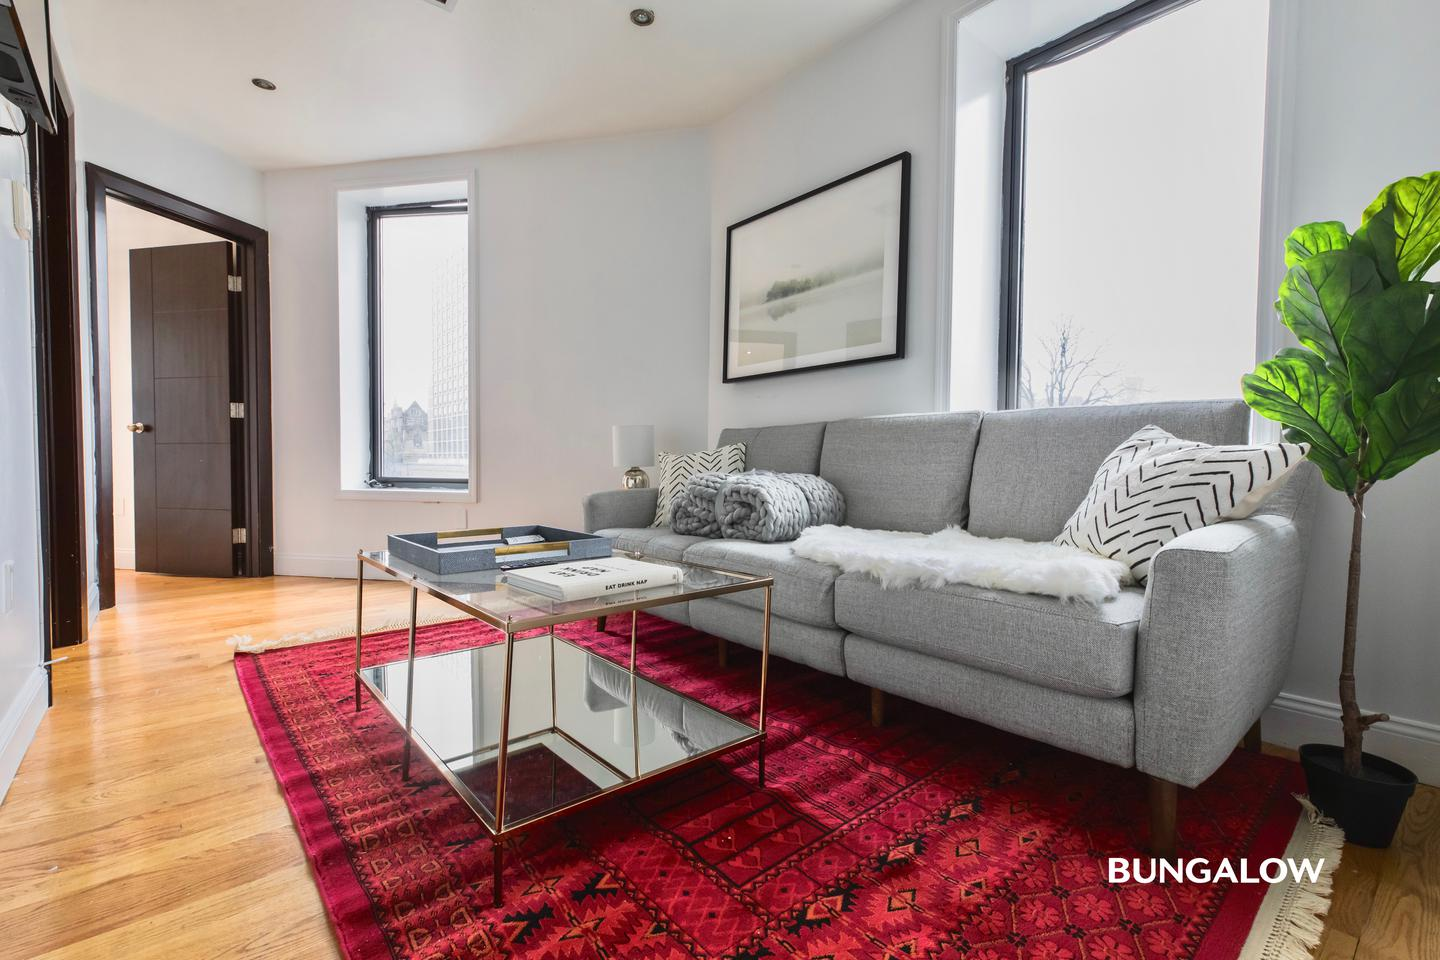 Sublets Near Bronxville Private Bedroom in Sleek Upper West Side Apartment With Gorgeous City Views for Bronxville Students in Bronxville, NY